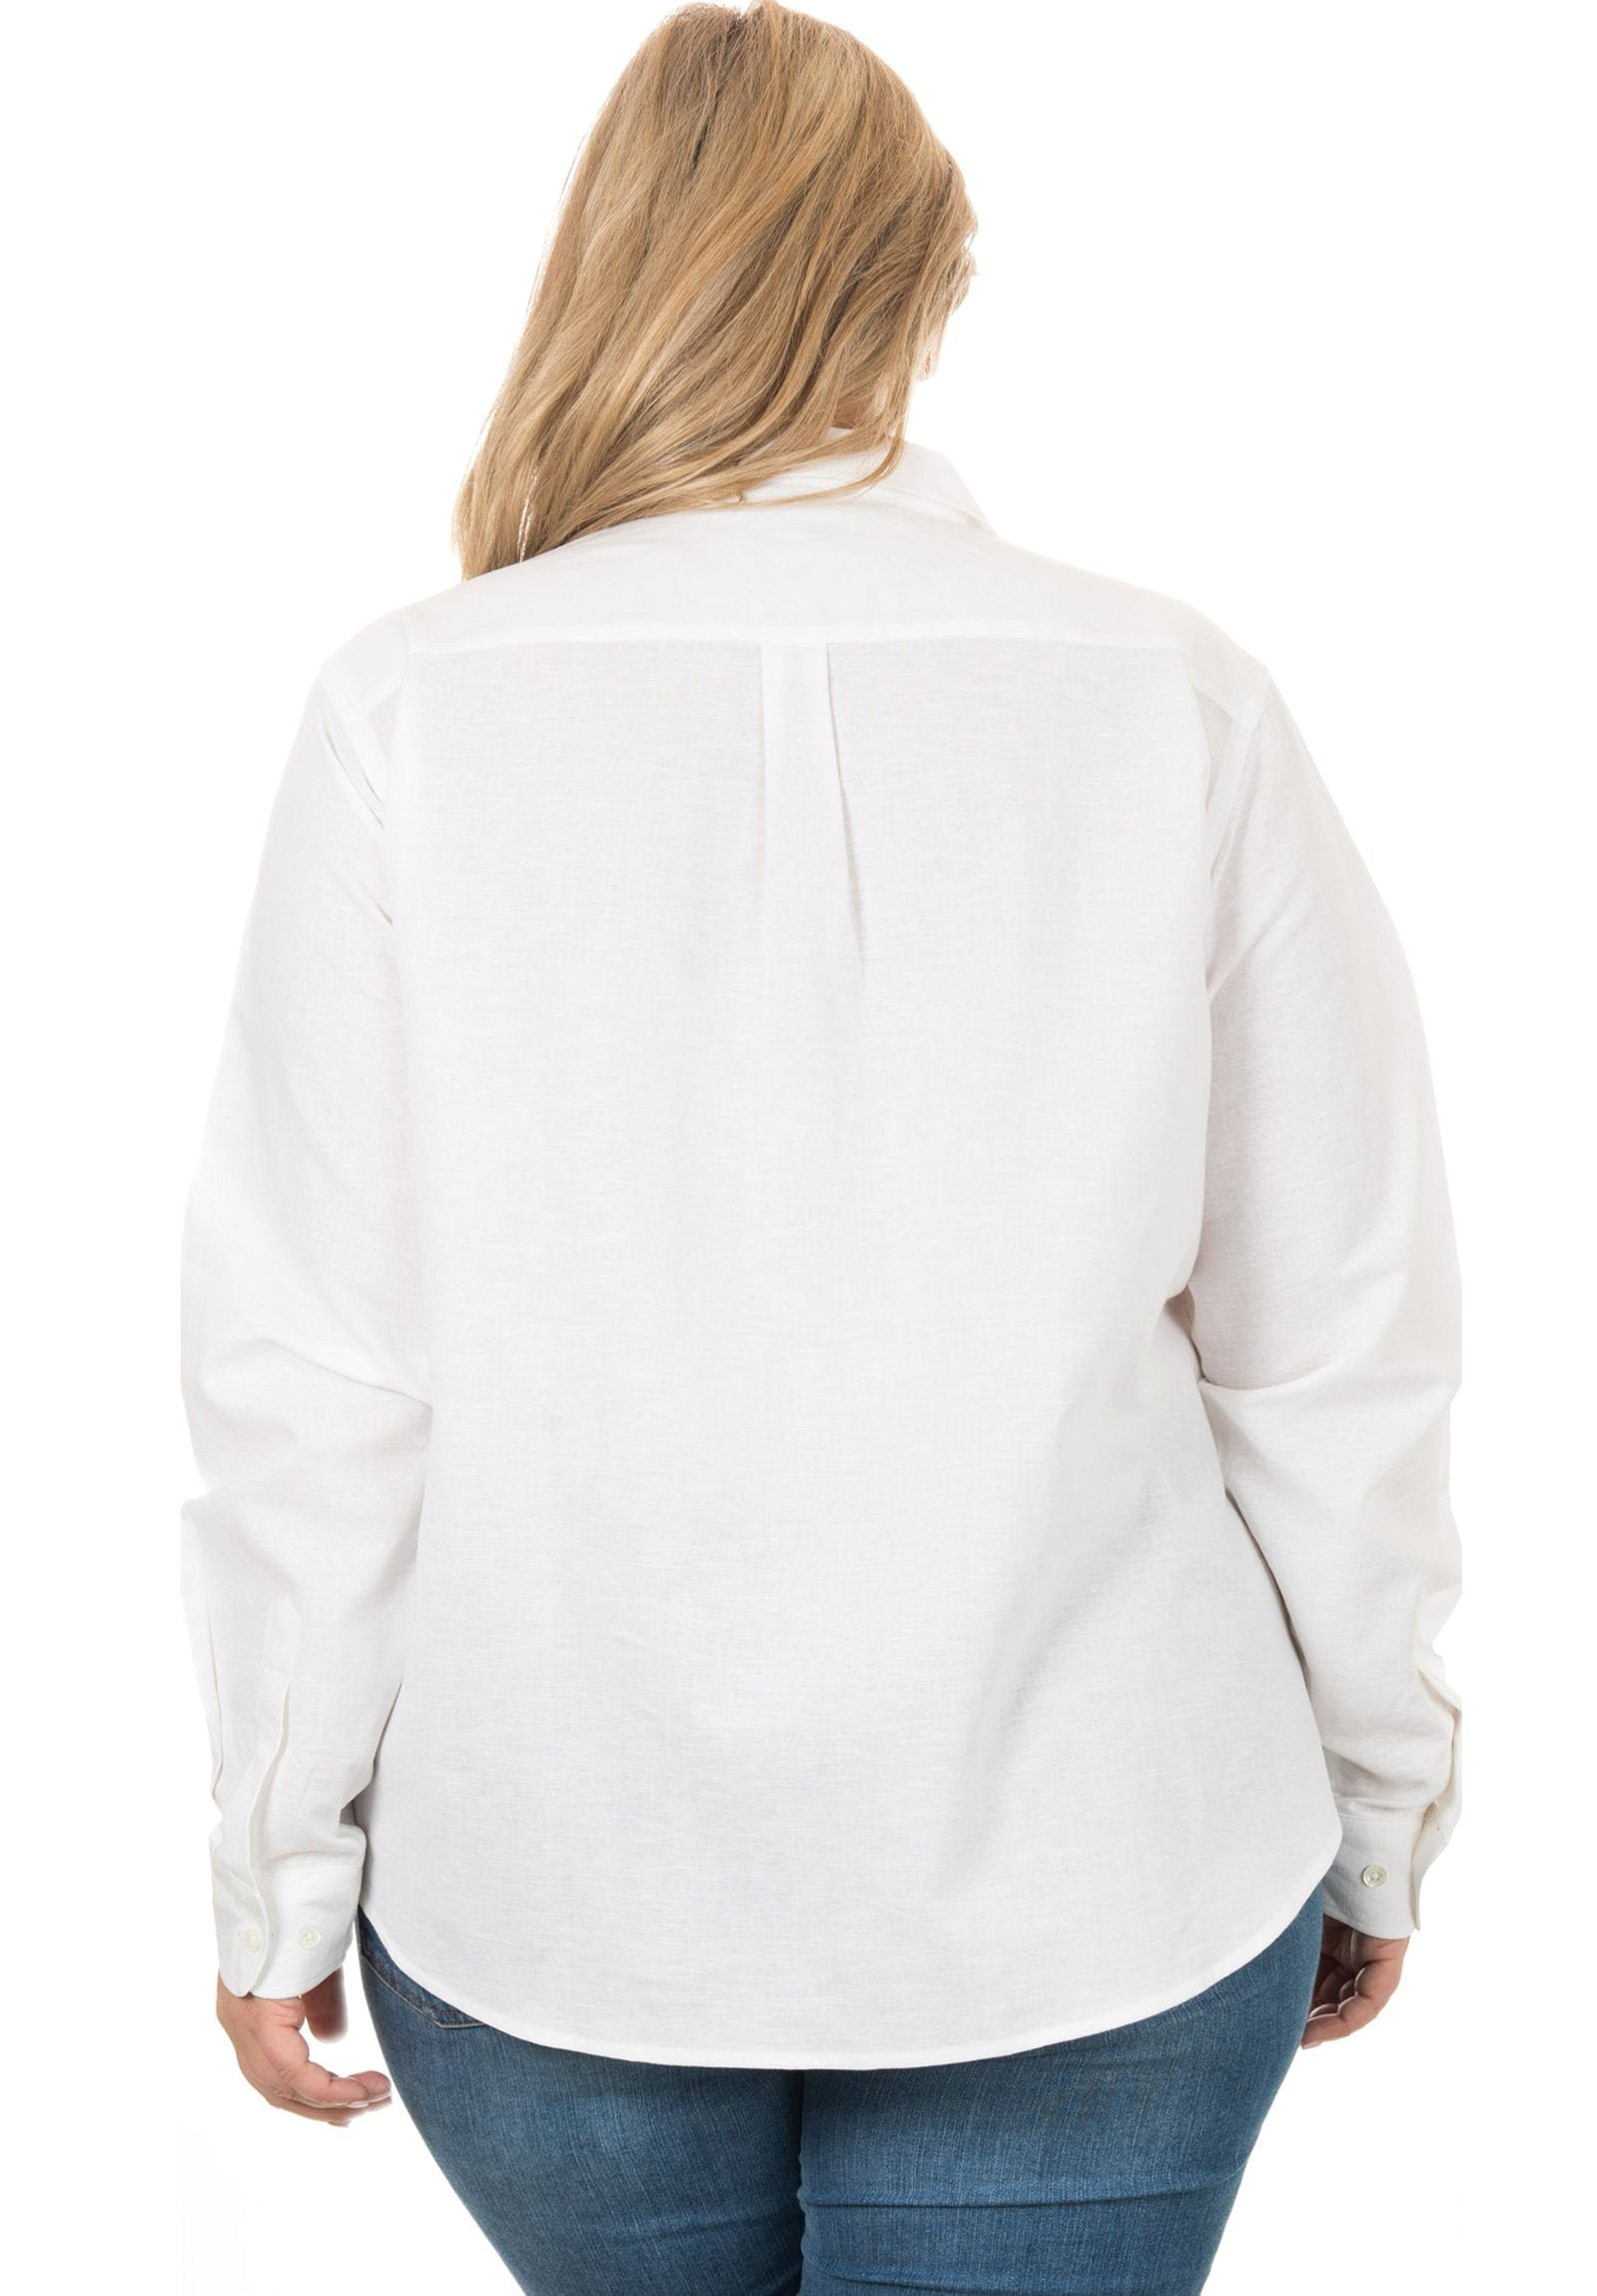 Iris Linen White, Plus Size Shirt